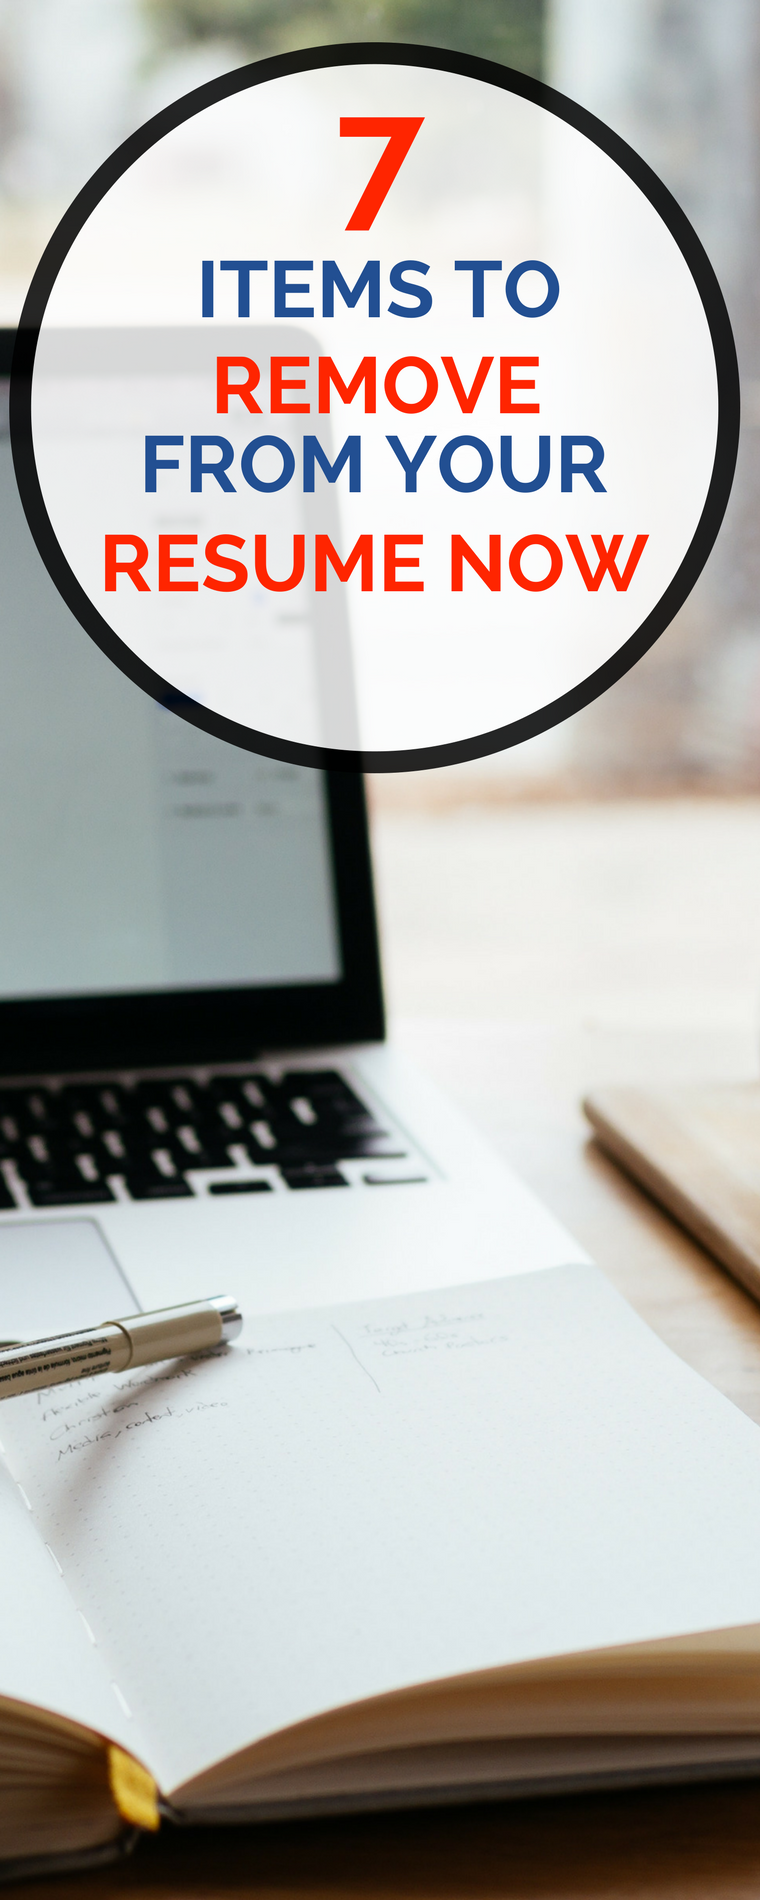 7 Items To Remove From Your Resume How to memorize